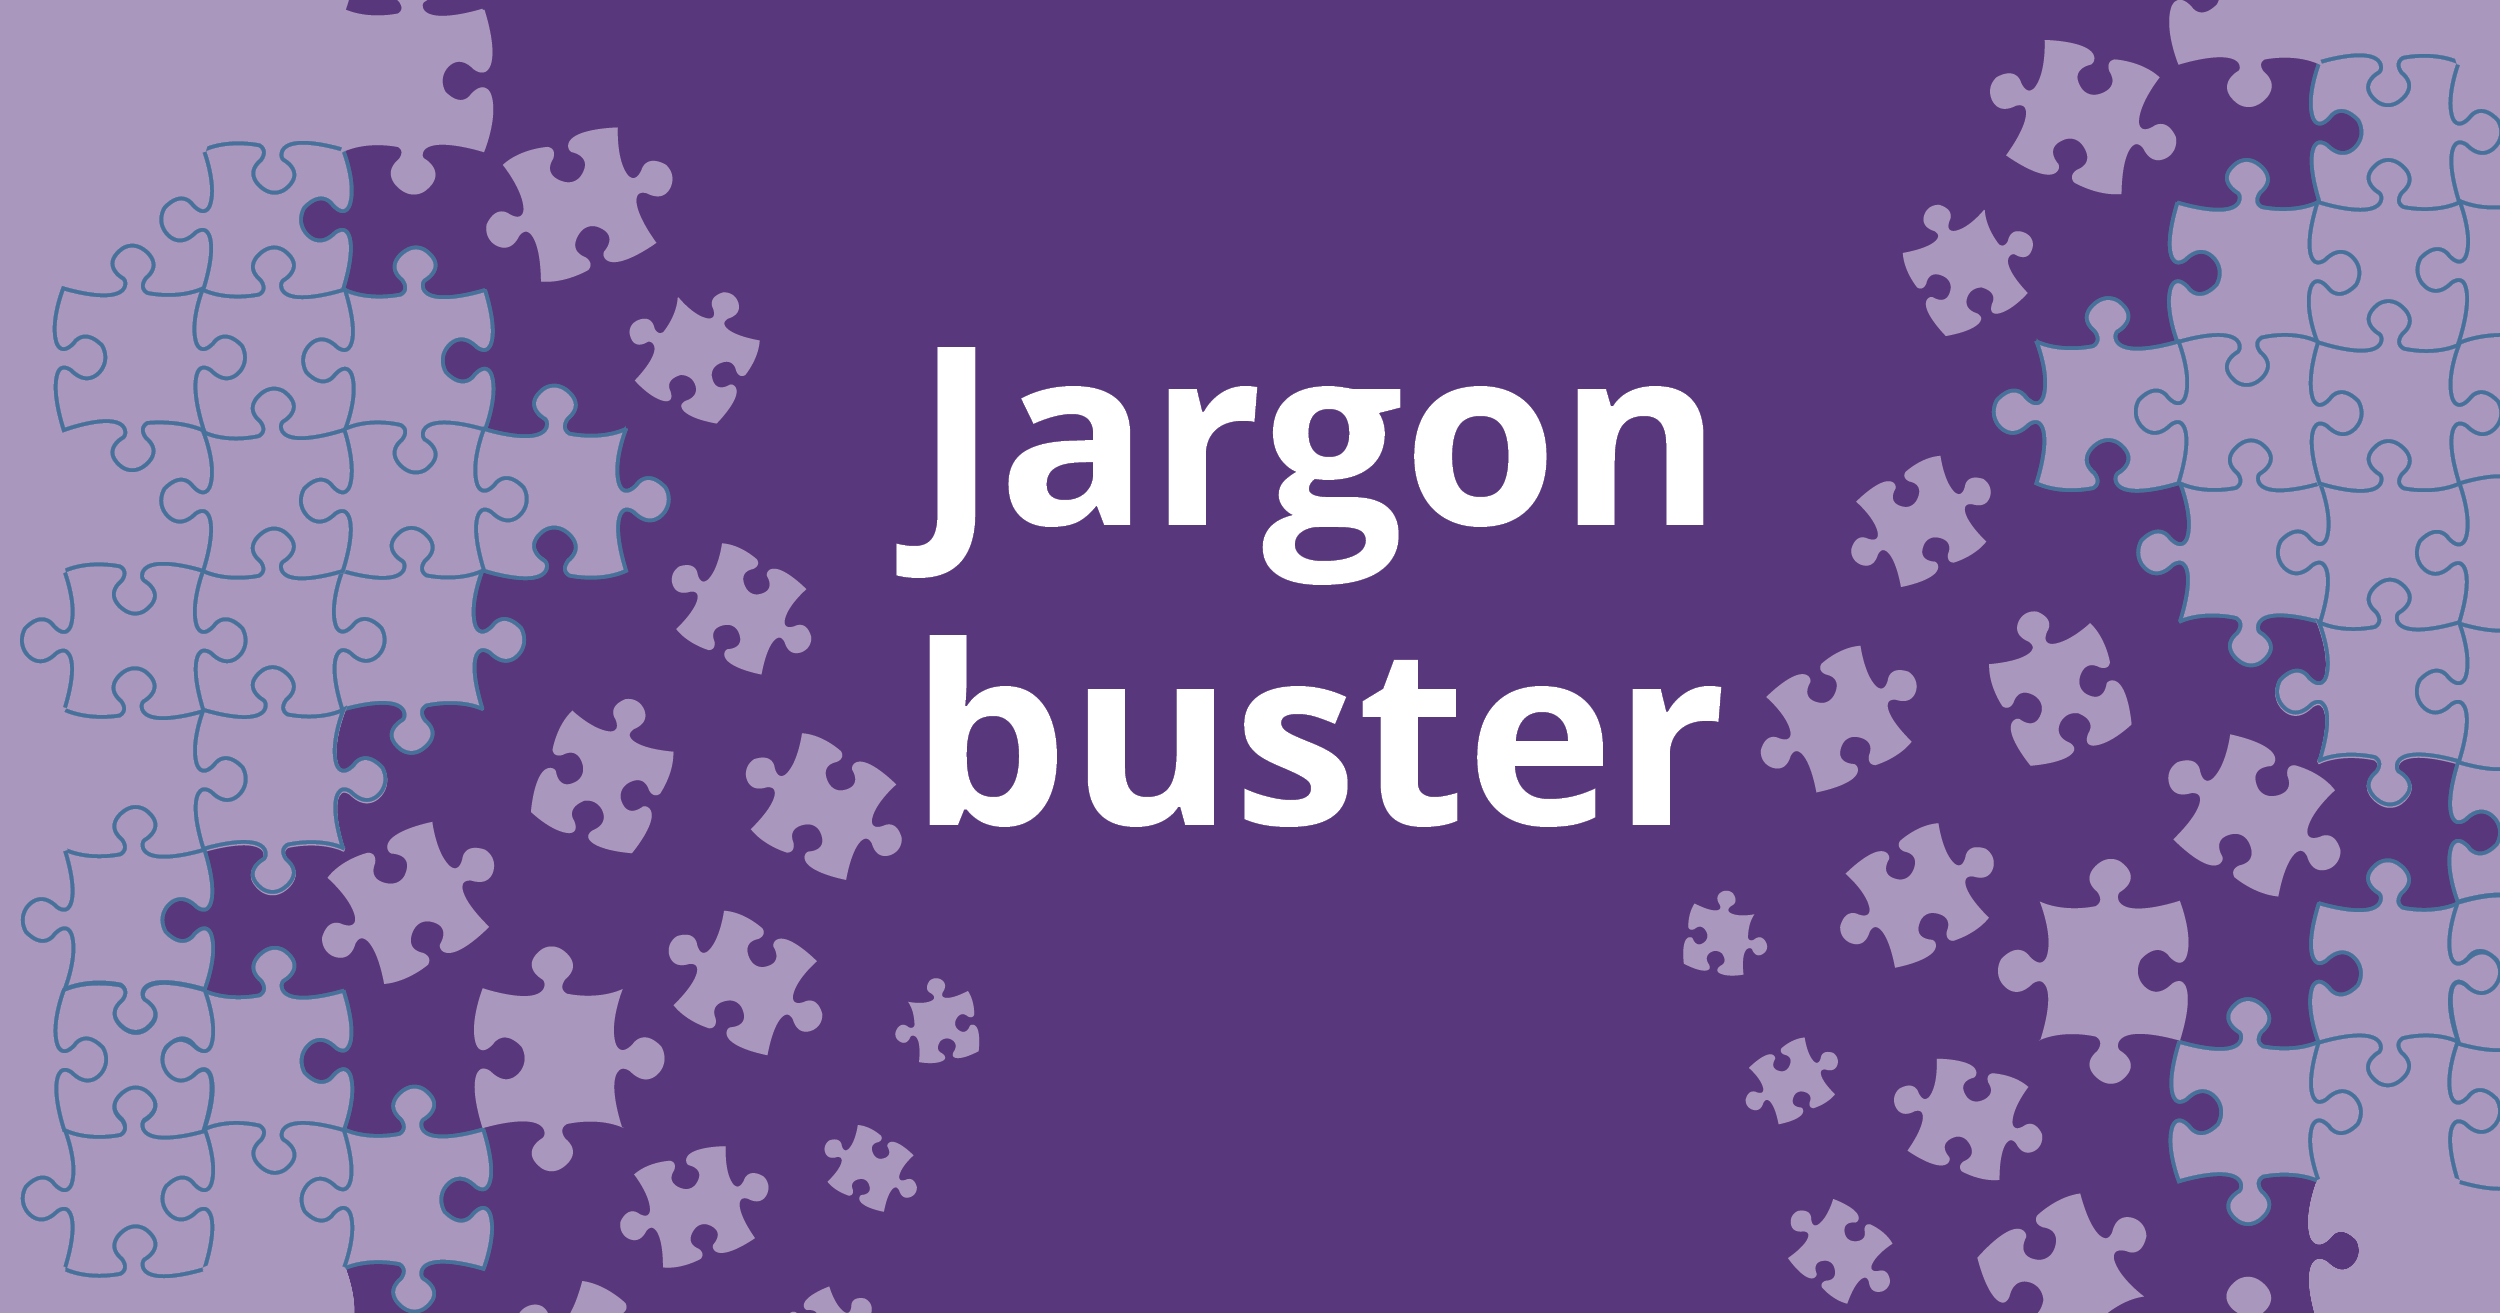 Autism jargon buster